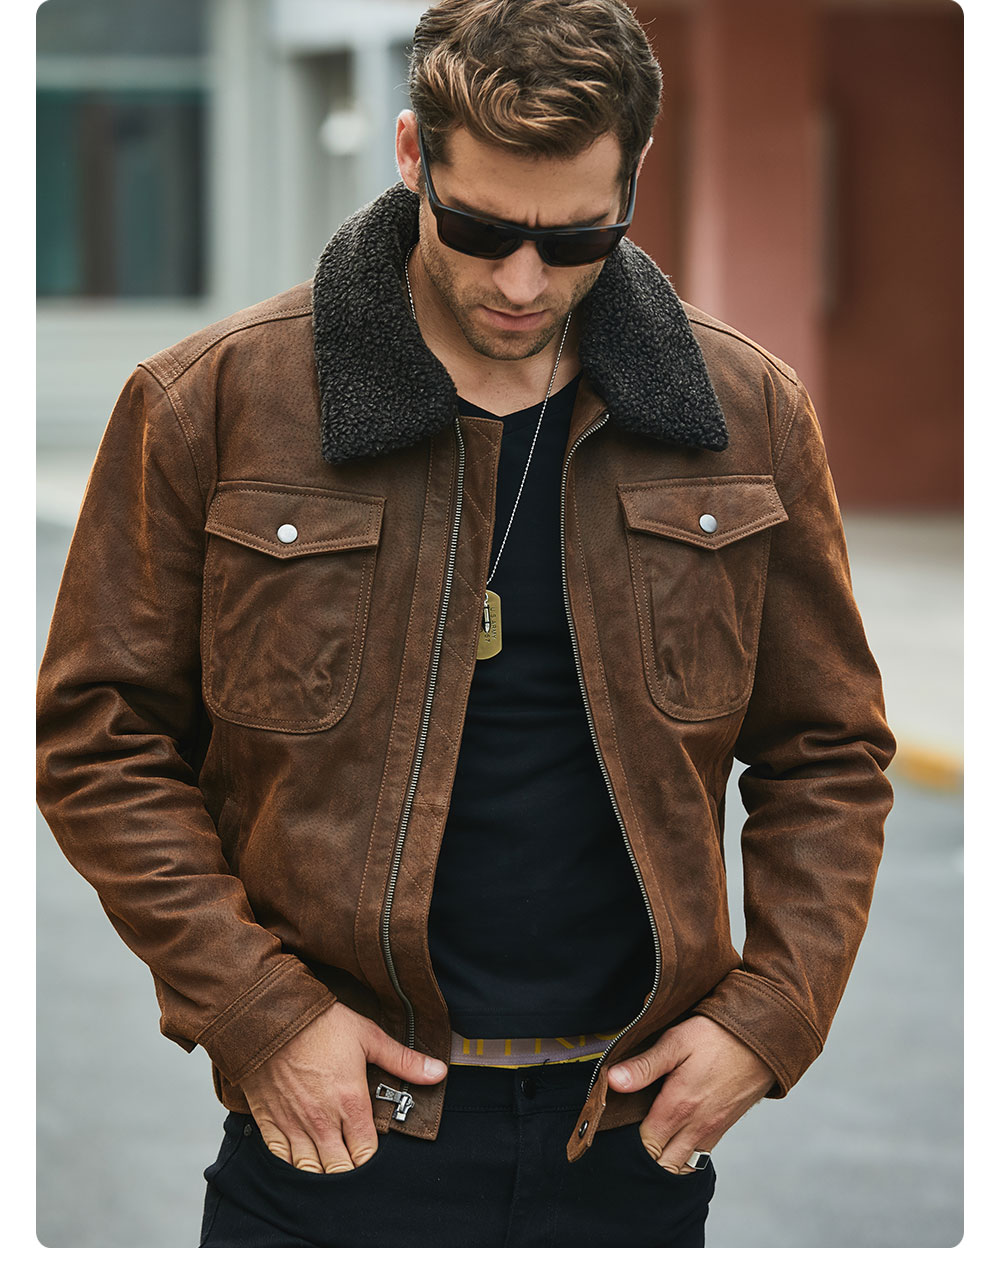 H53aa9b29394945c6b6e8fa6ed50368b4C FLAVOR Men's Real Leather Jacket Genuine Leather jacket with faux fur collar male Motorcycle warm coat Genuine Leather Jacket